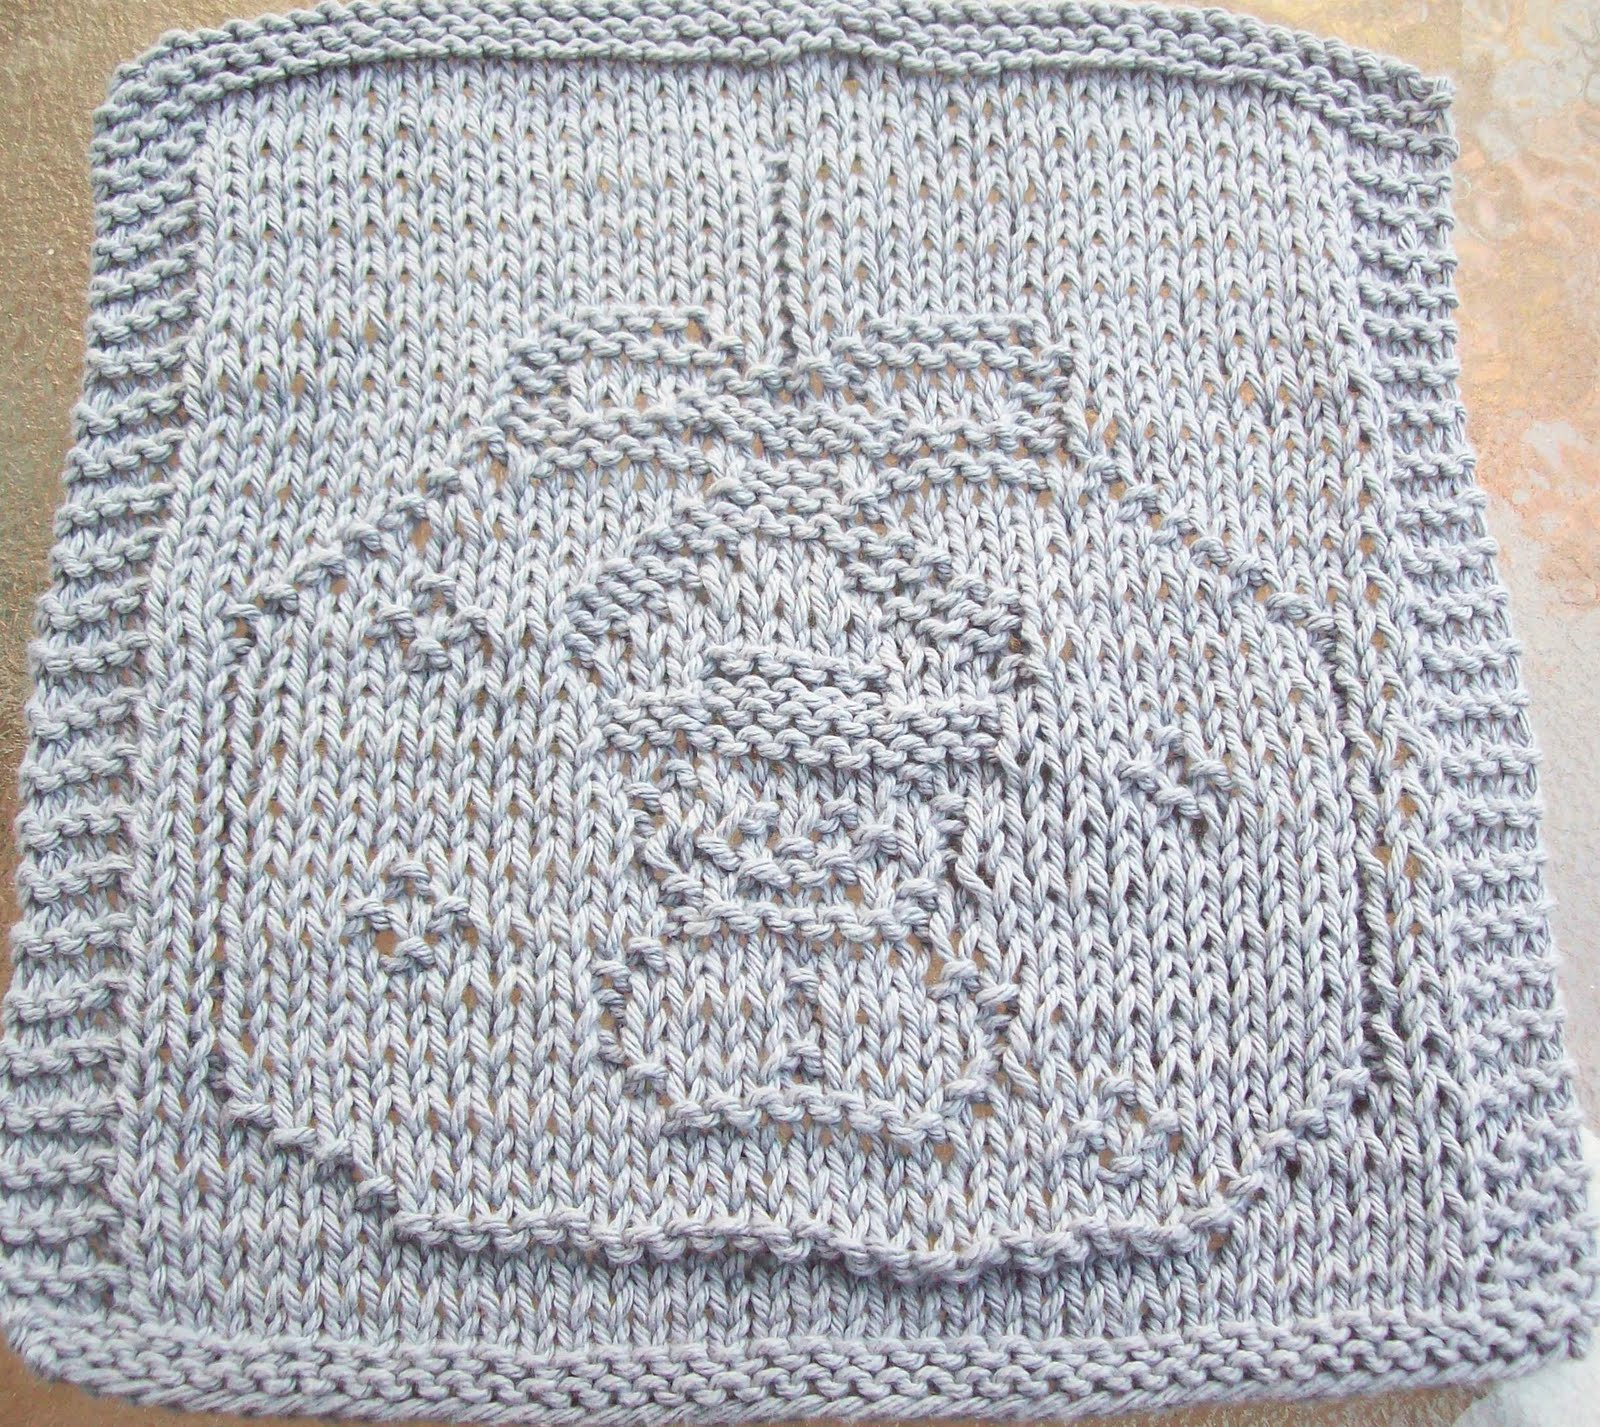 Free Knitted Dishcloth Patterns Snowman : DigKnitty Designs: Snowman Ornament Knit Dishcloth Pattern